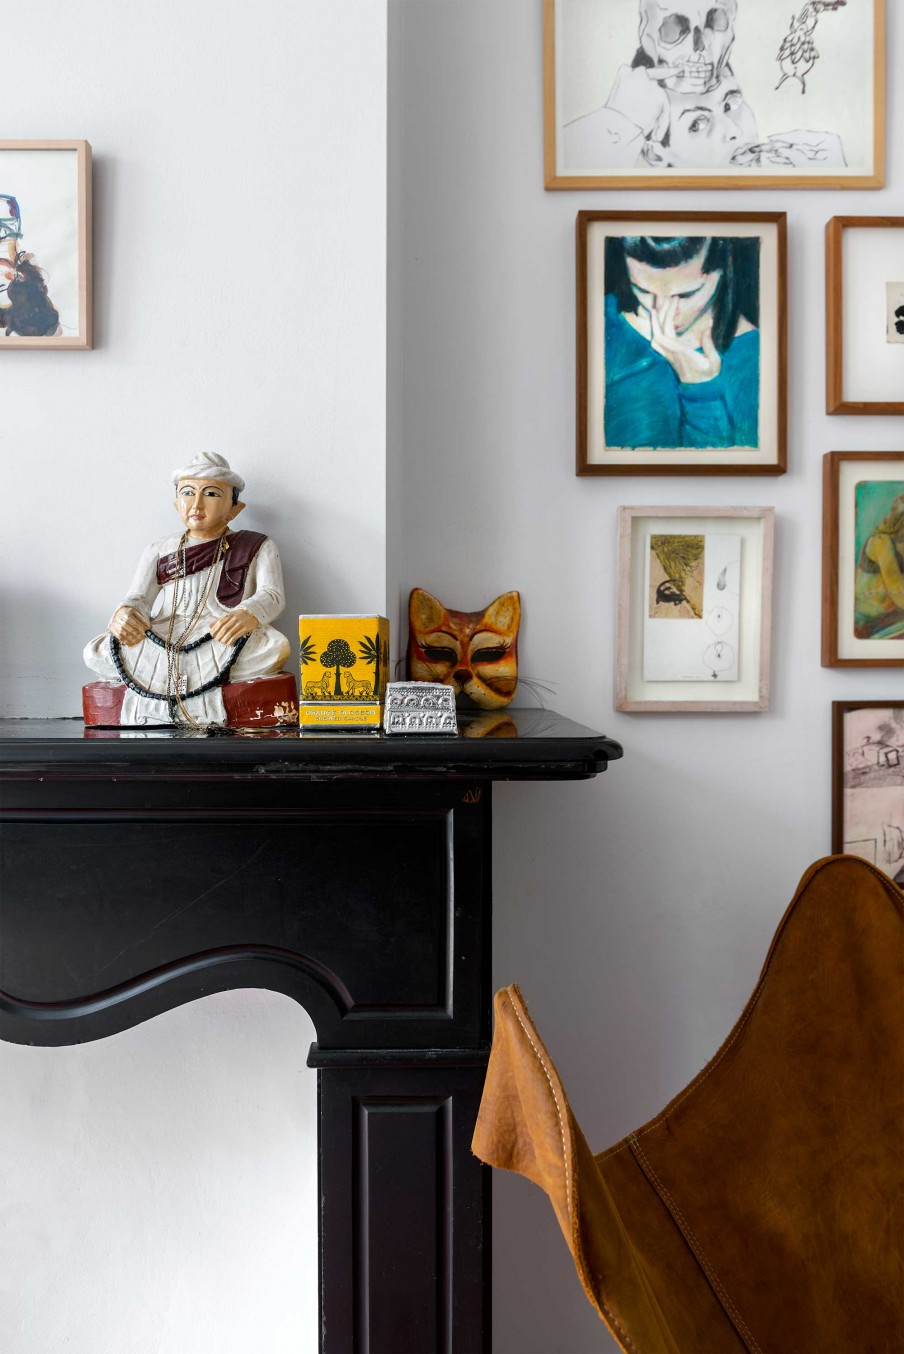 07-The-artist-owner-made-the-home-personalized-using-his-own-artworks